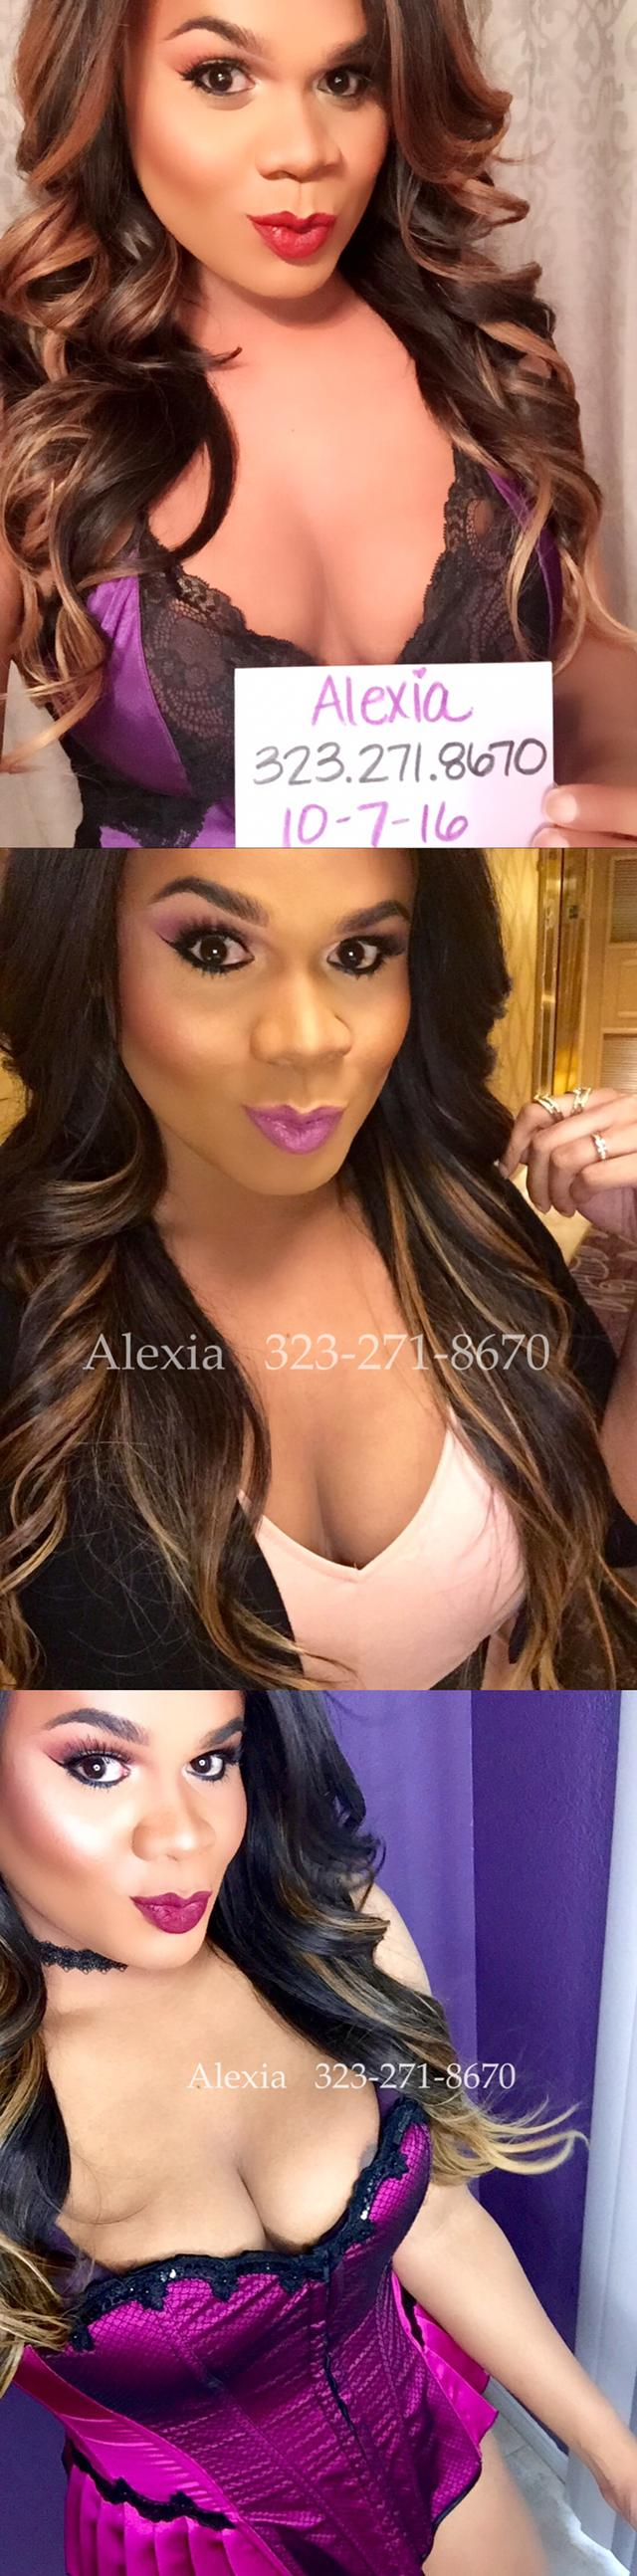 Escort 323-271-8670 Las Vegas, Las Vegas - Outcalls and Incalls transx